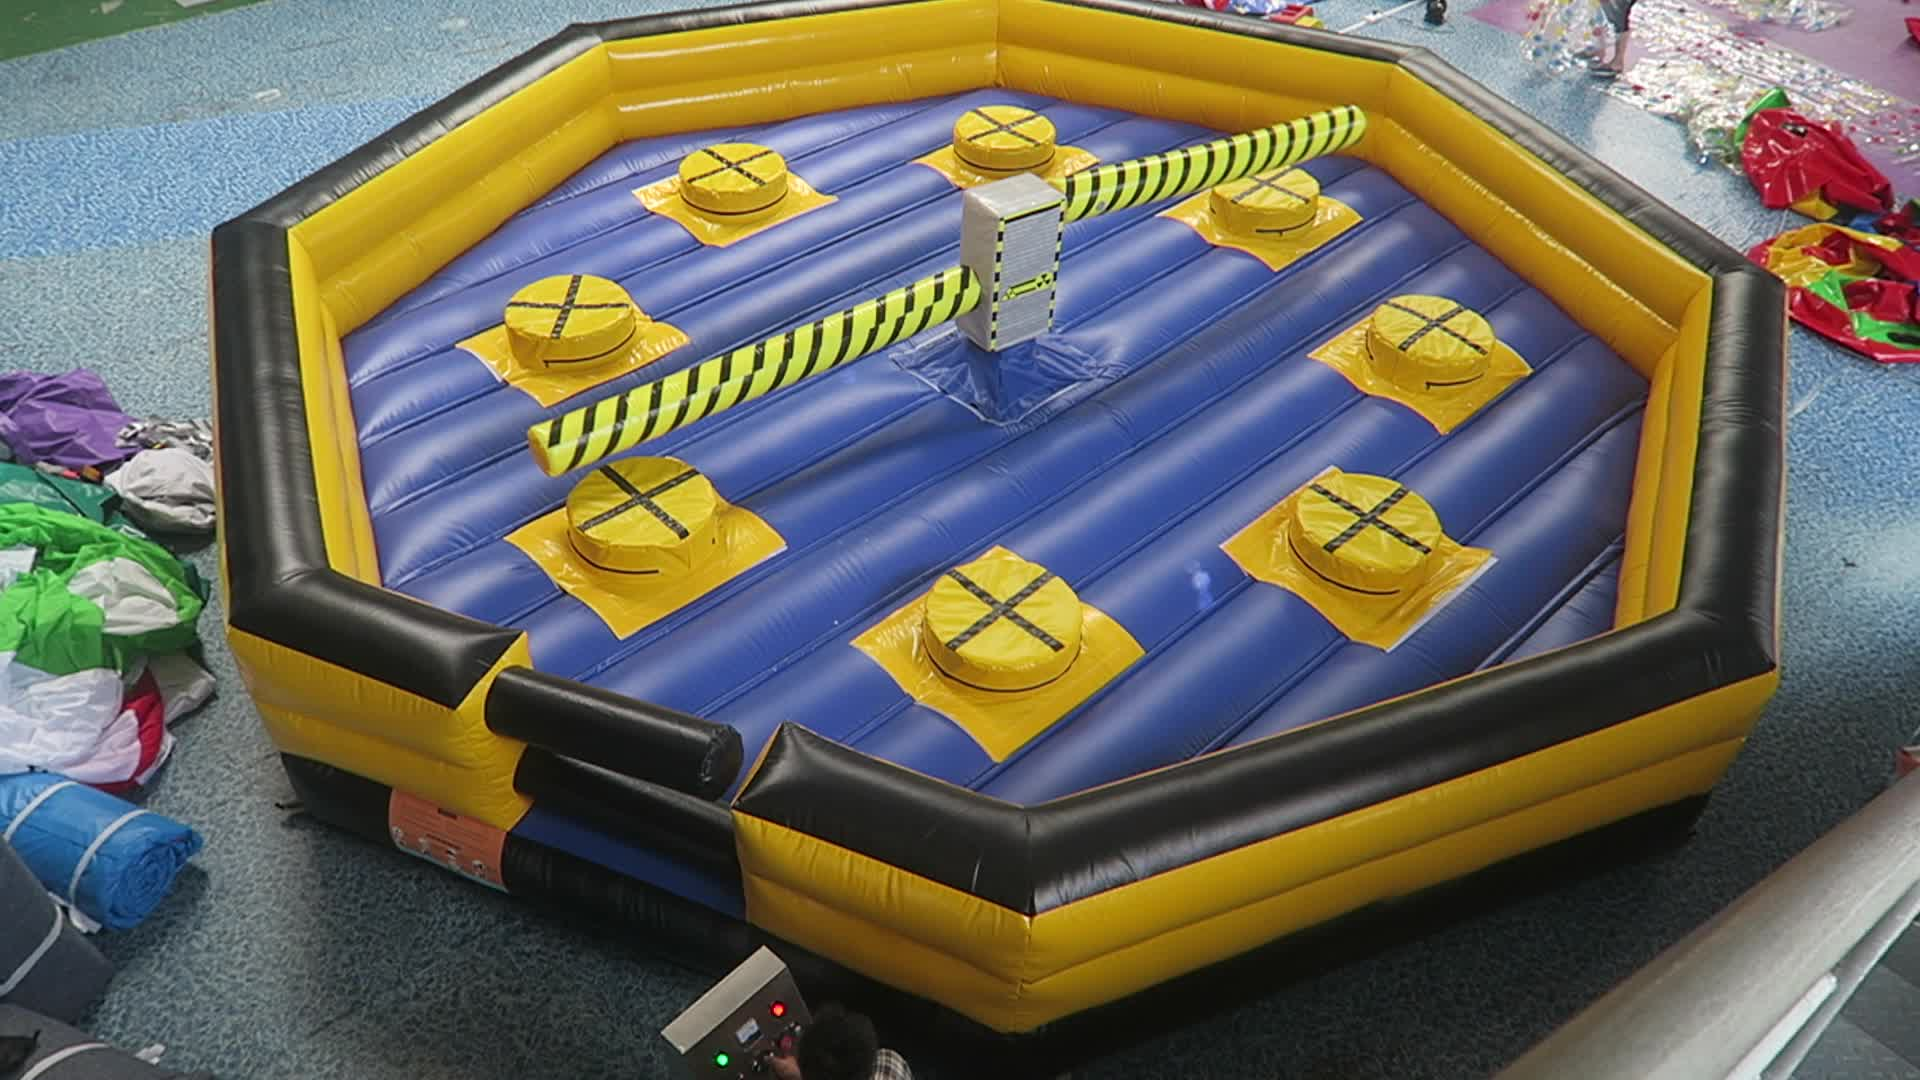 8m inflatable wipeout inflatable meltdown wipeout mechanical challenge eliminator games inflatable sweeper games